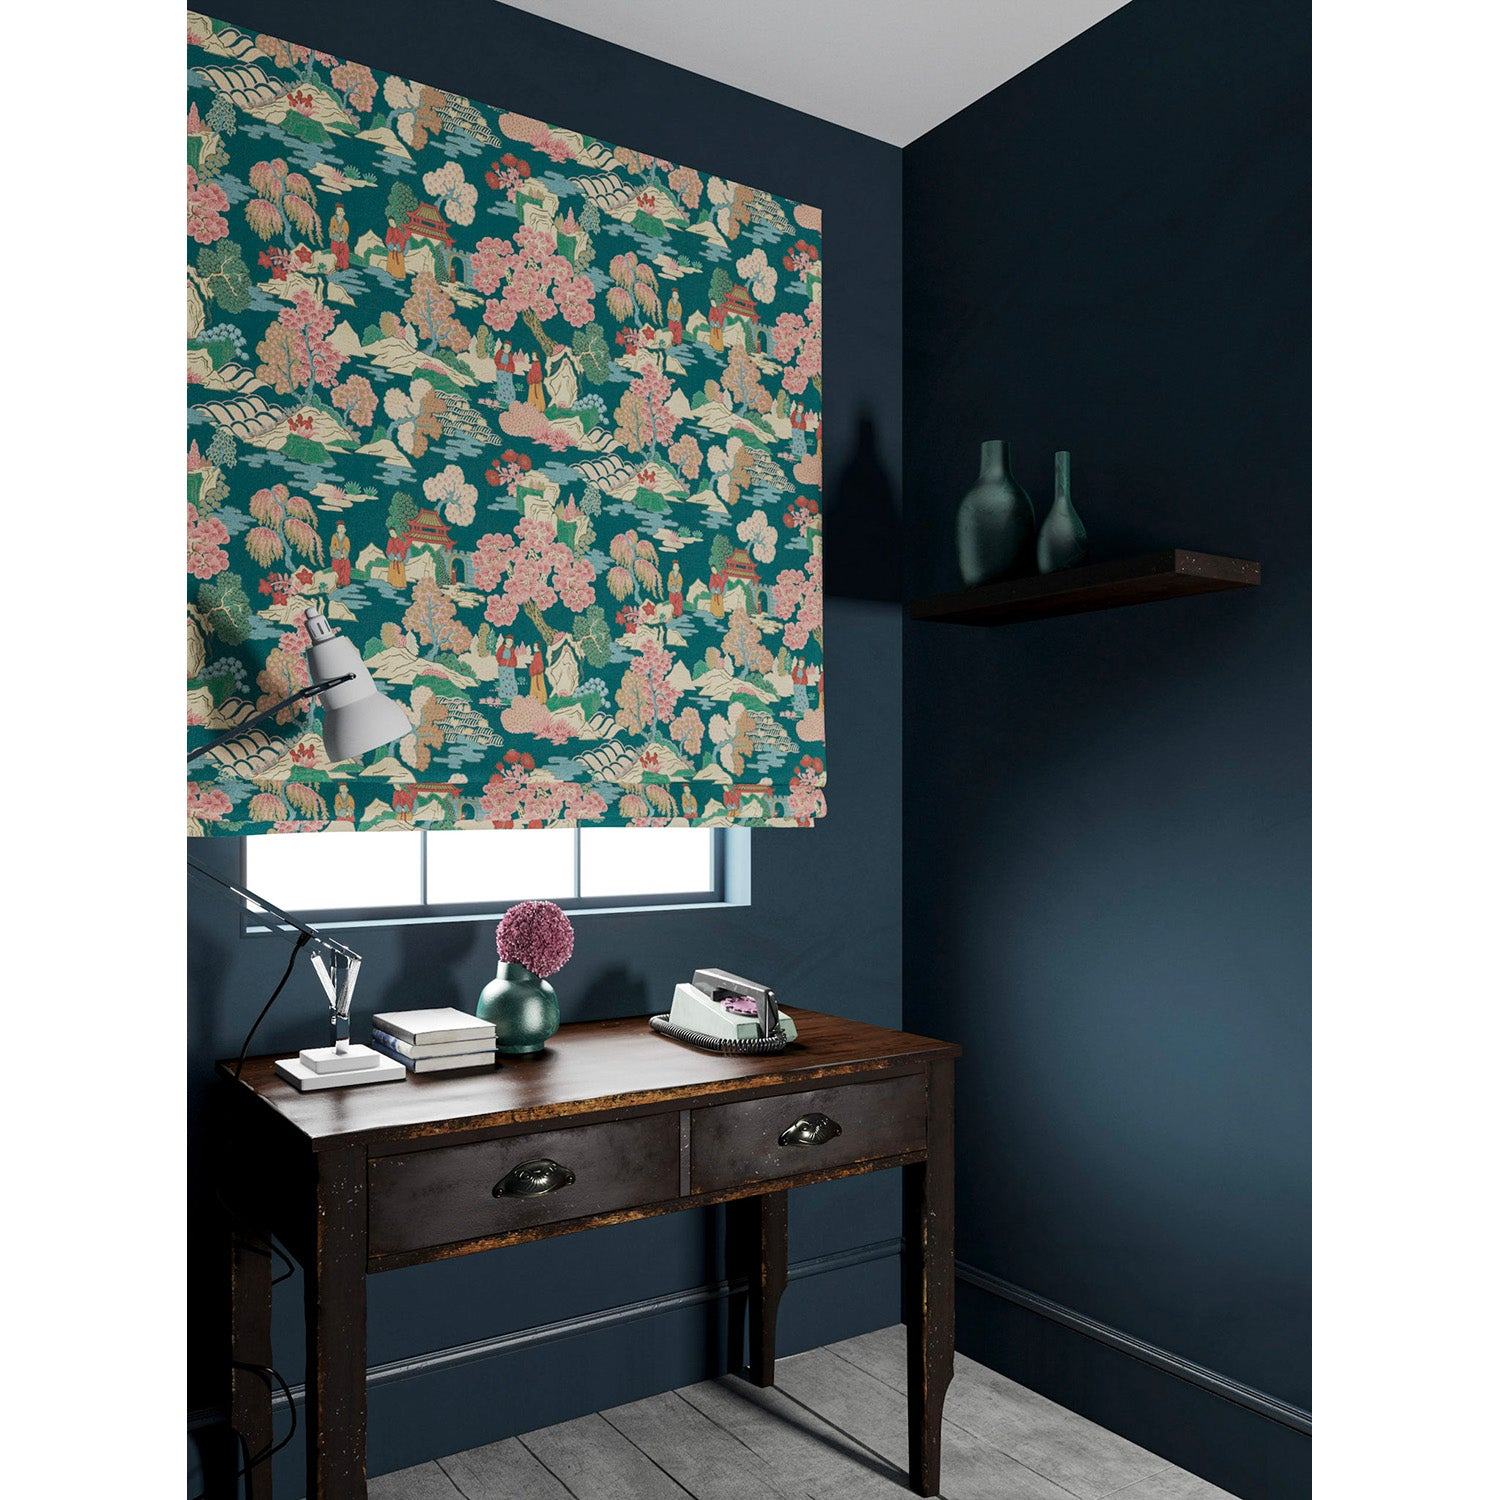 Velvet blind in a teal and pink velvet fabric with Japanese inspired design and stain resistant finish